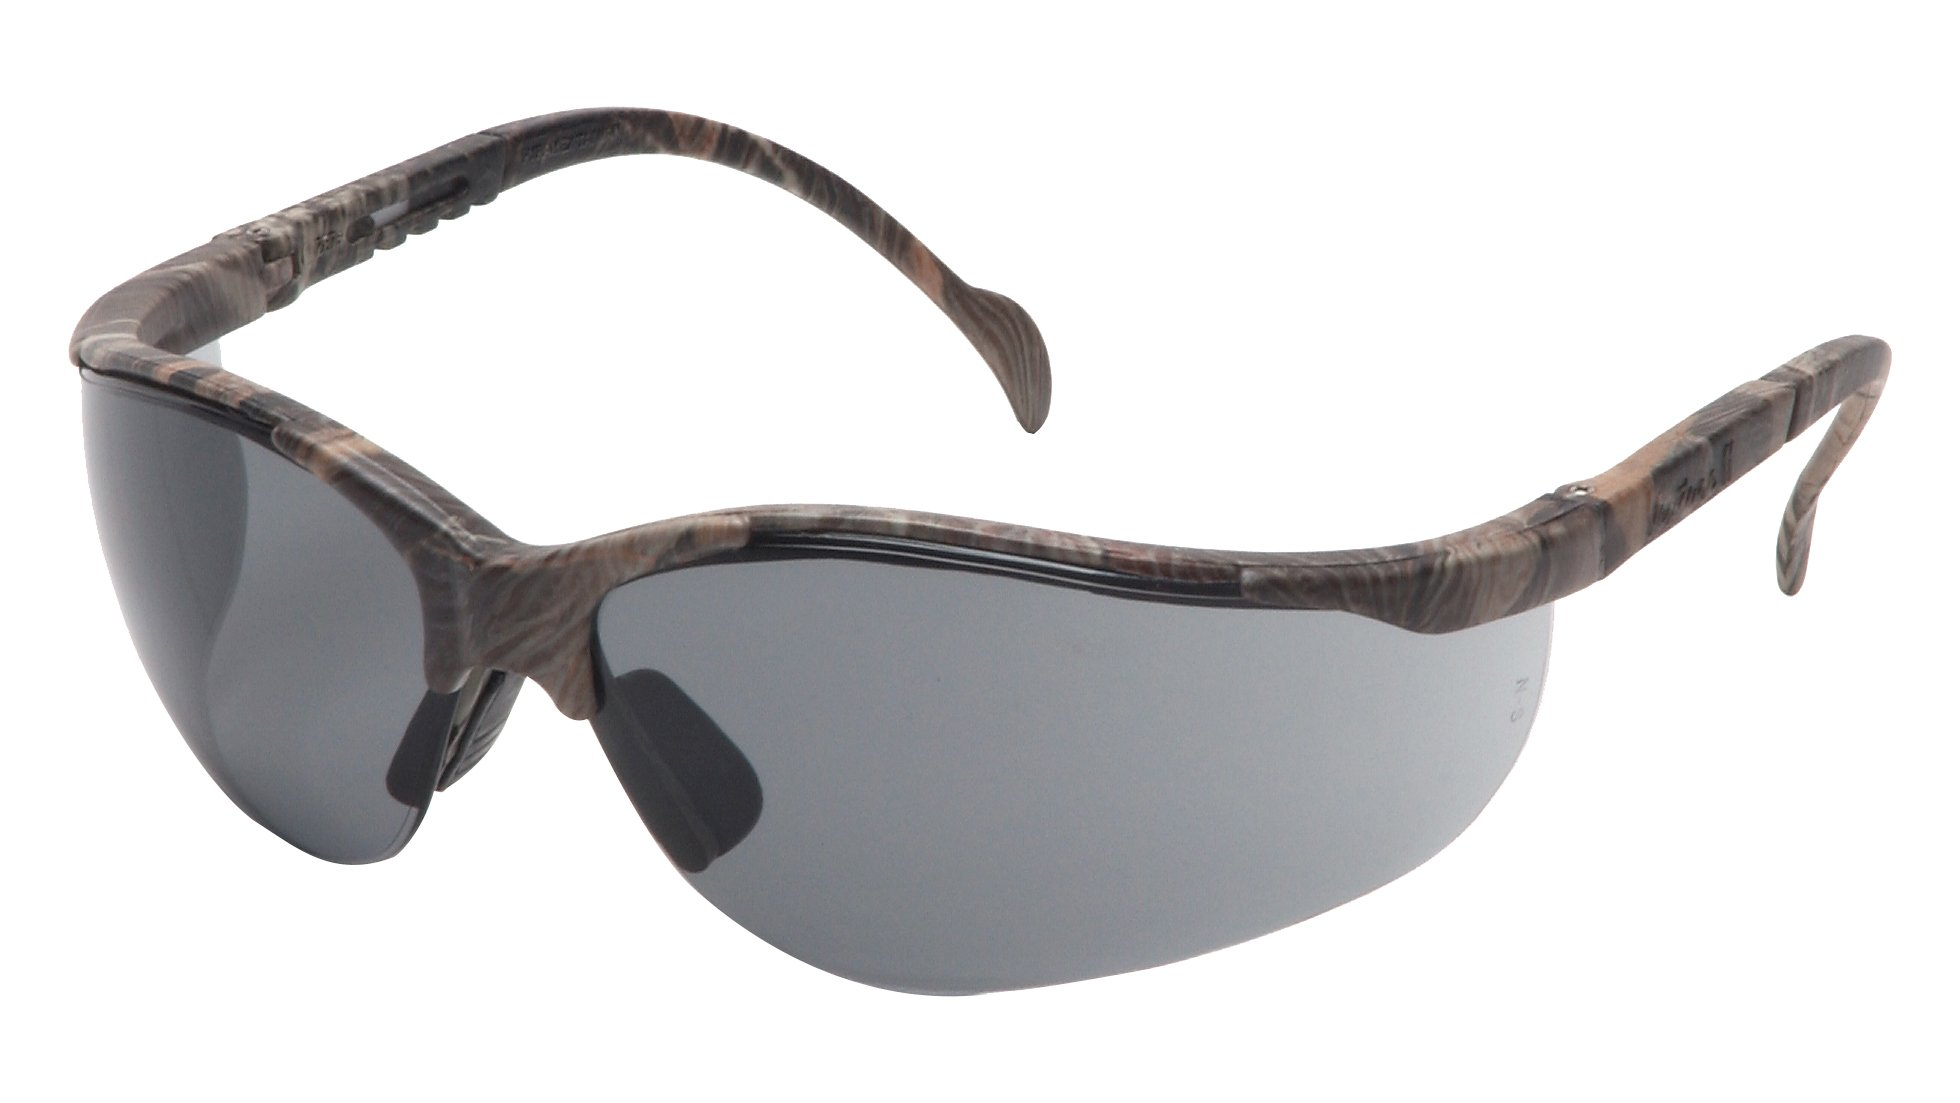 Pyramex Venture Ii Safety Eyewear, Gray Lens With Realtree Hardwoods Hd Frame by Pyramex Safety